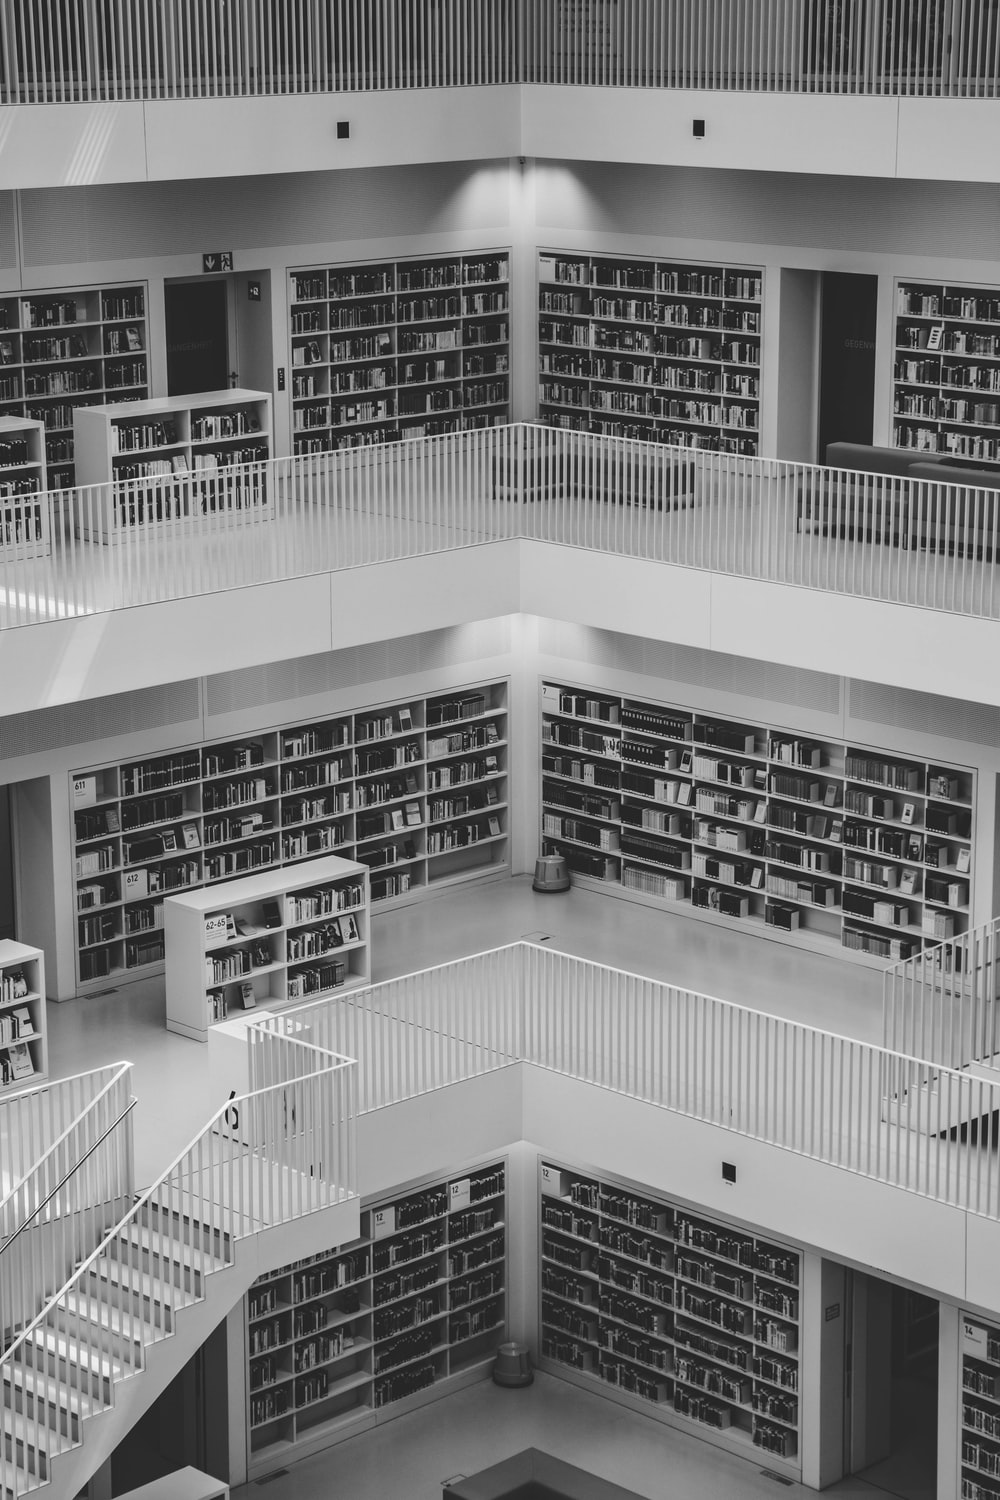 greyscale photo of library